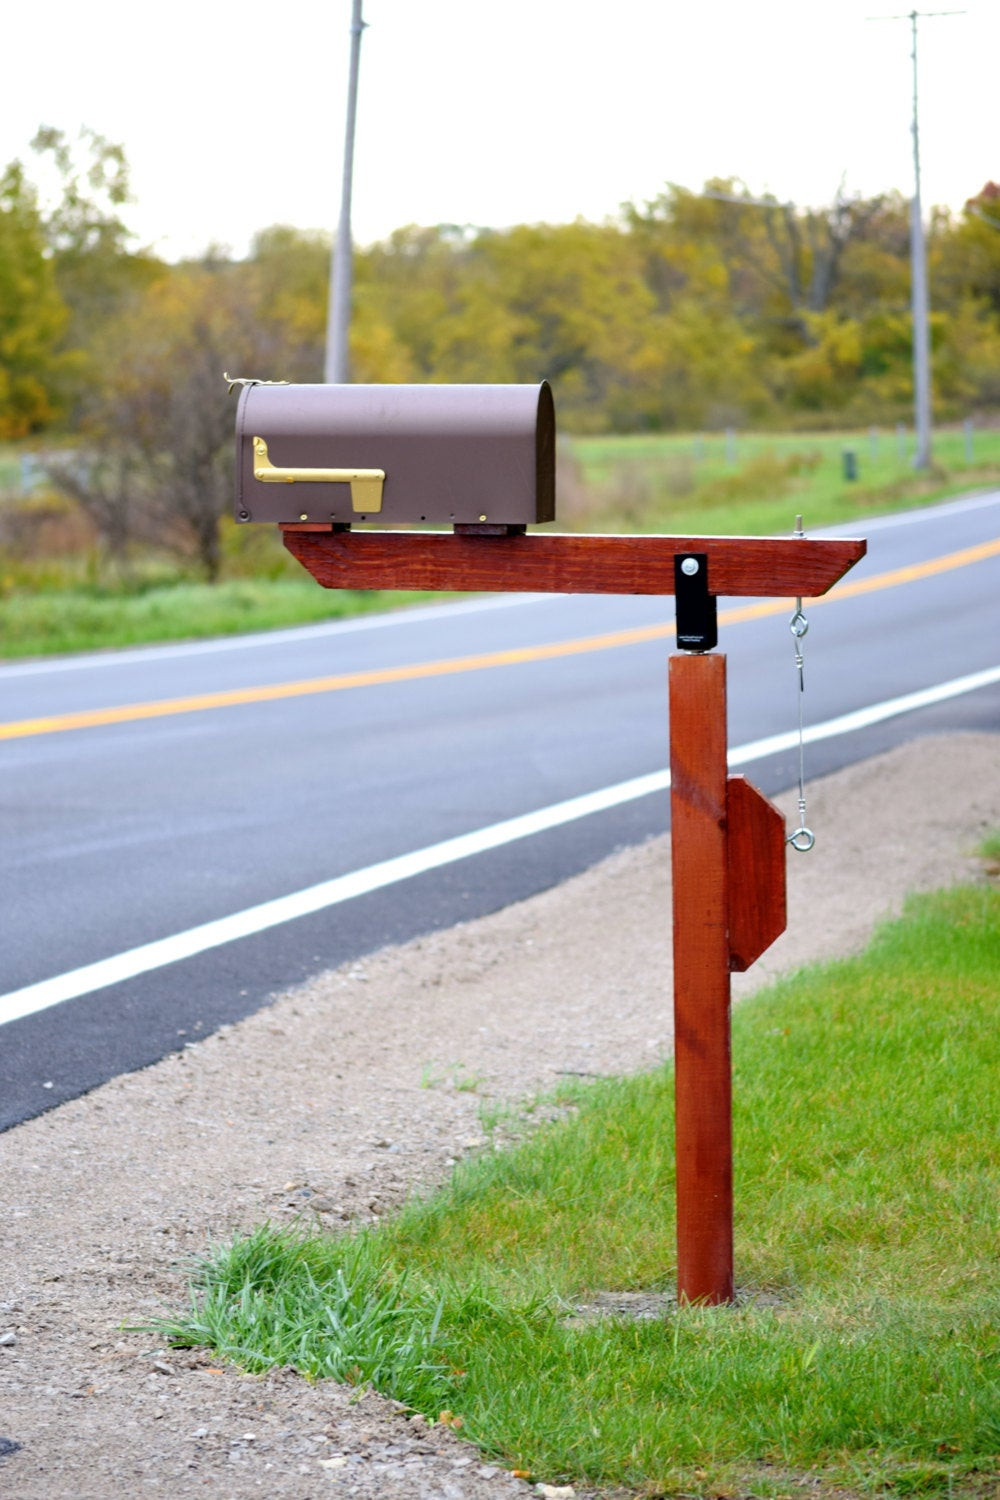 Best ideas about Mailbox Post DIY . Save or Pin DIY Plow Resistant Mailbox Post Hardware Kit Stainless Steel Now.